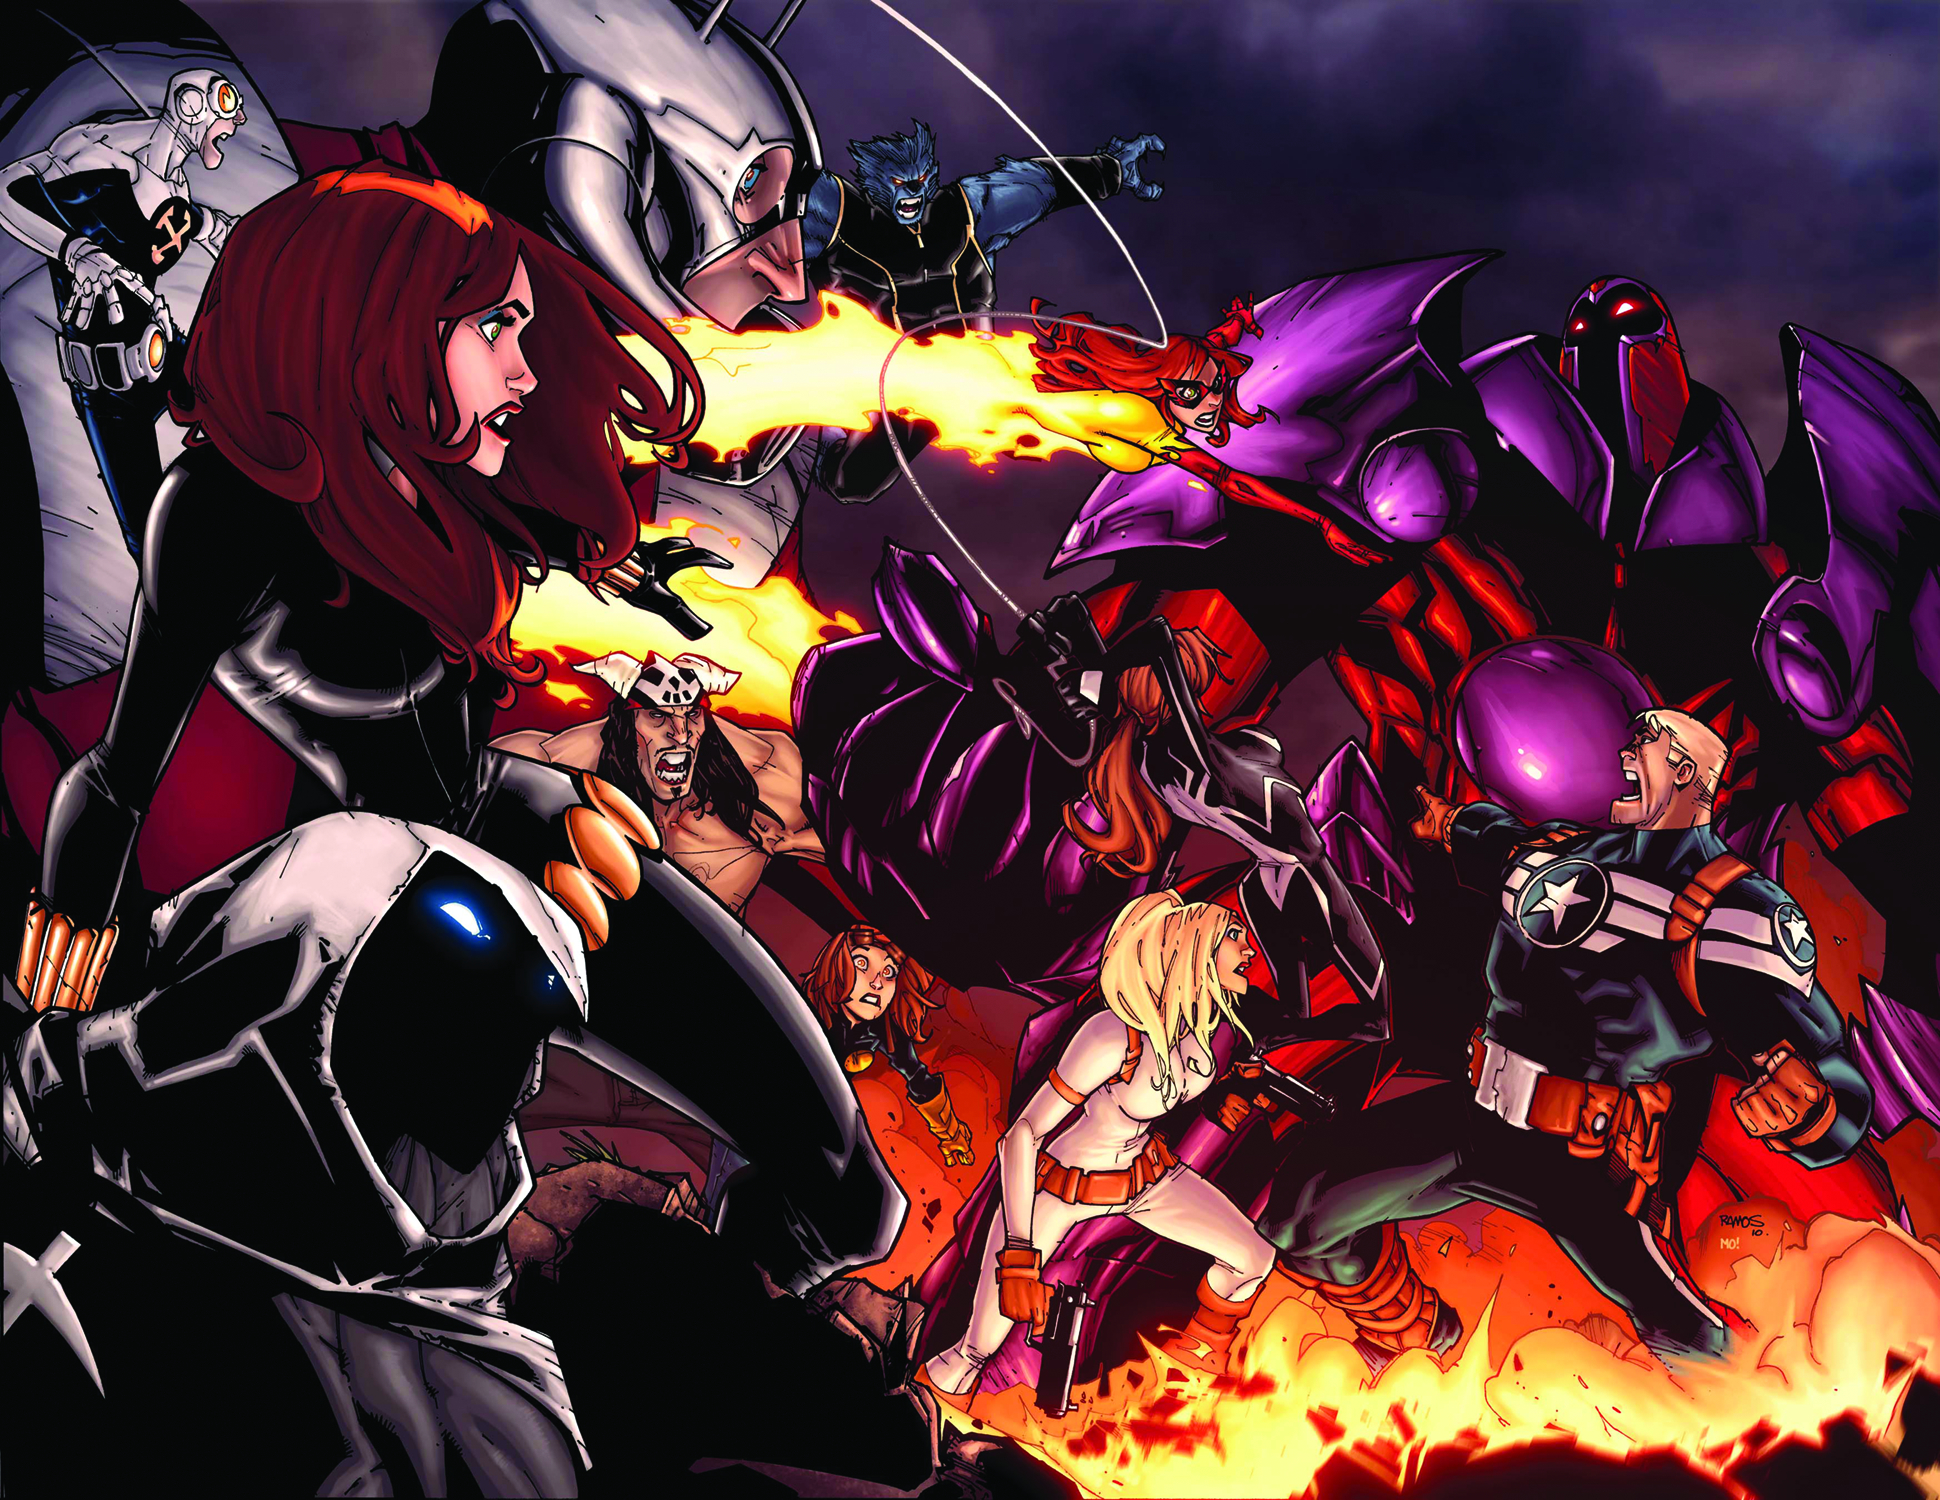 ONSLAUGHT UNLEASHED #1 (OF 4)